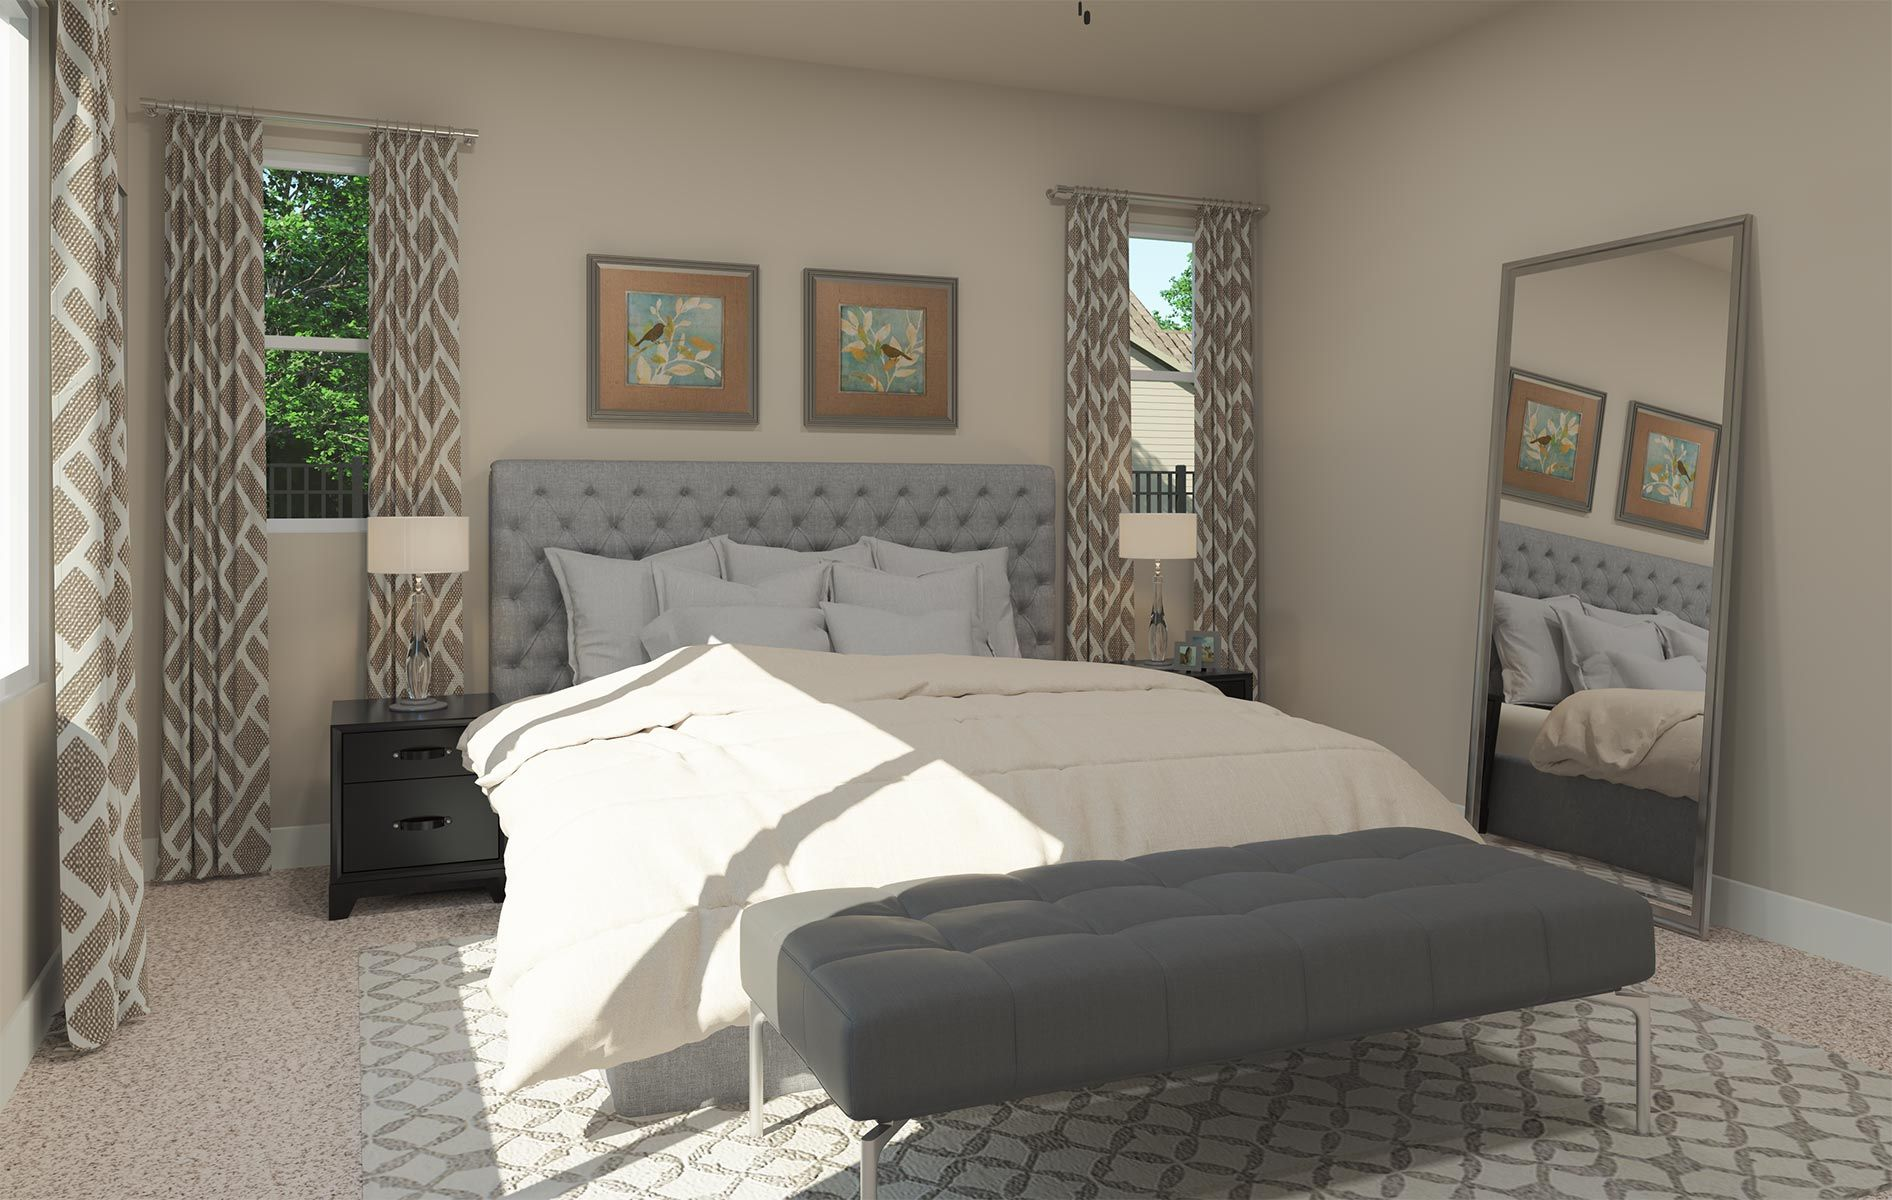 Bedroom featured in the Residence 1 By TRI Pointe Homes in Sacramento, CA